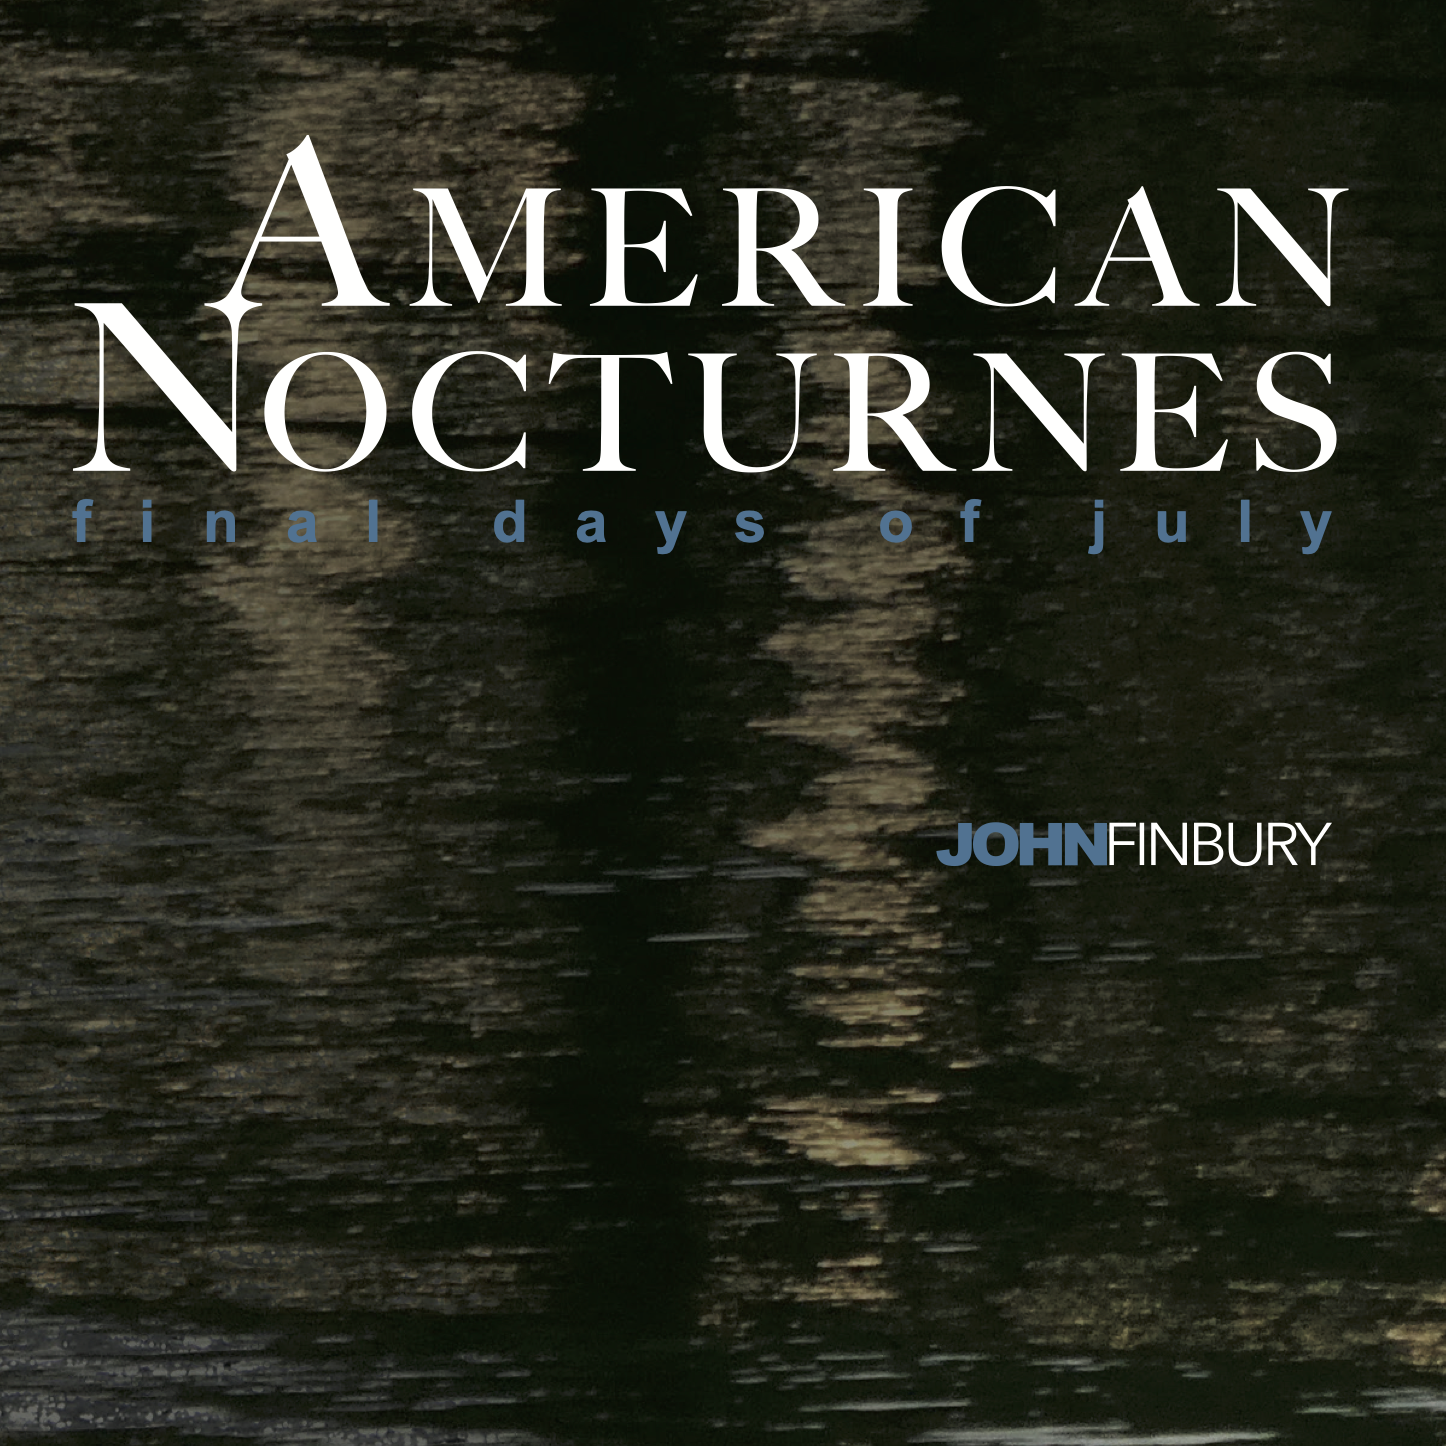 John Finbury Release of American Nocturnes – Final Days of July